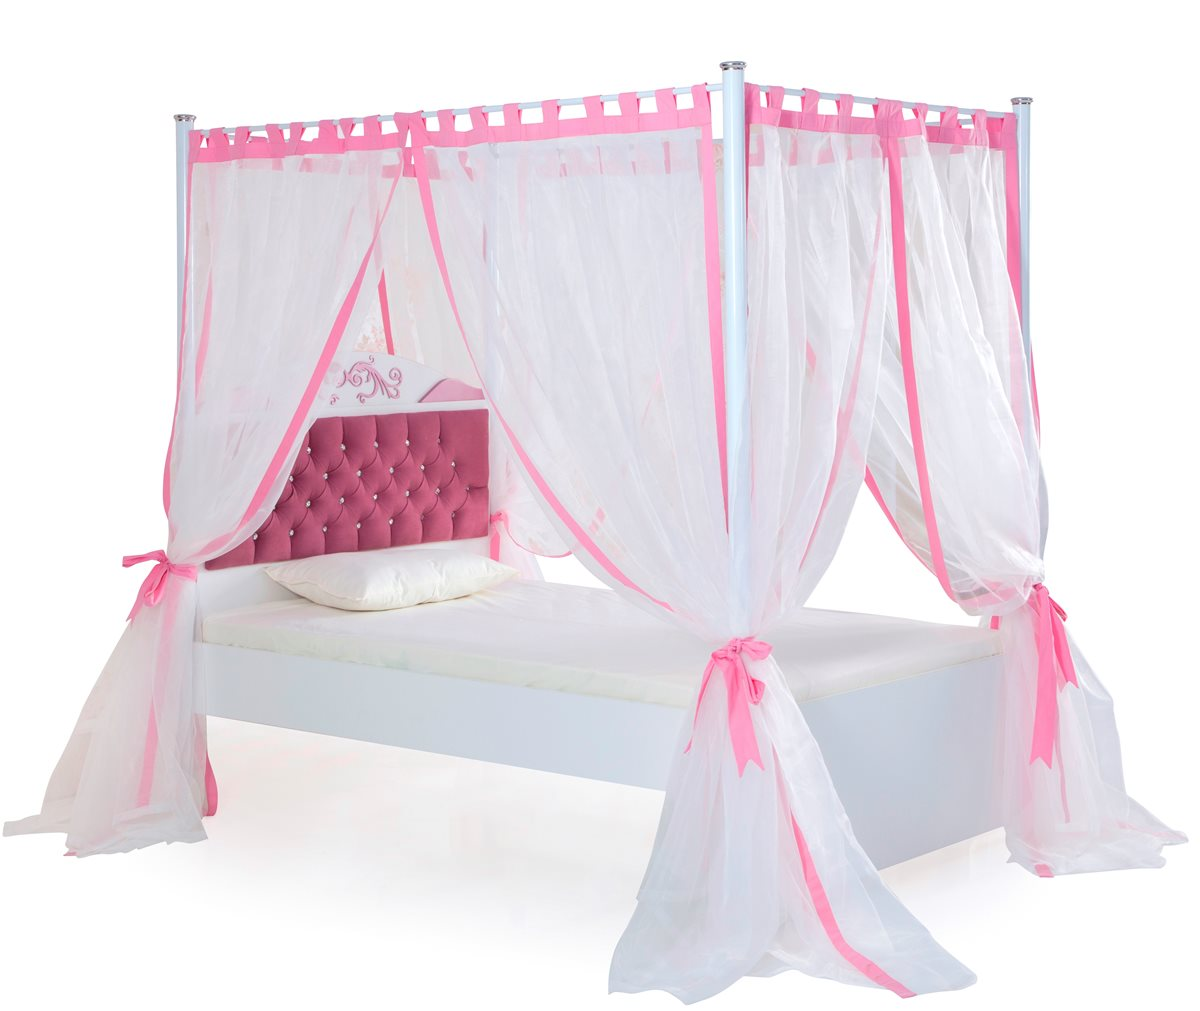 pretty kinderzimmer f r m dchen himmelbett kinder bett kleiderschrank ebay. Black Bedroom Furniture Sets. Home Design Ideas